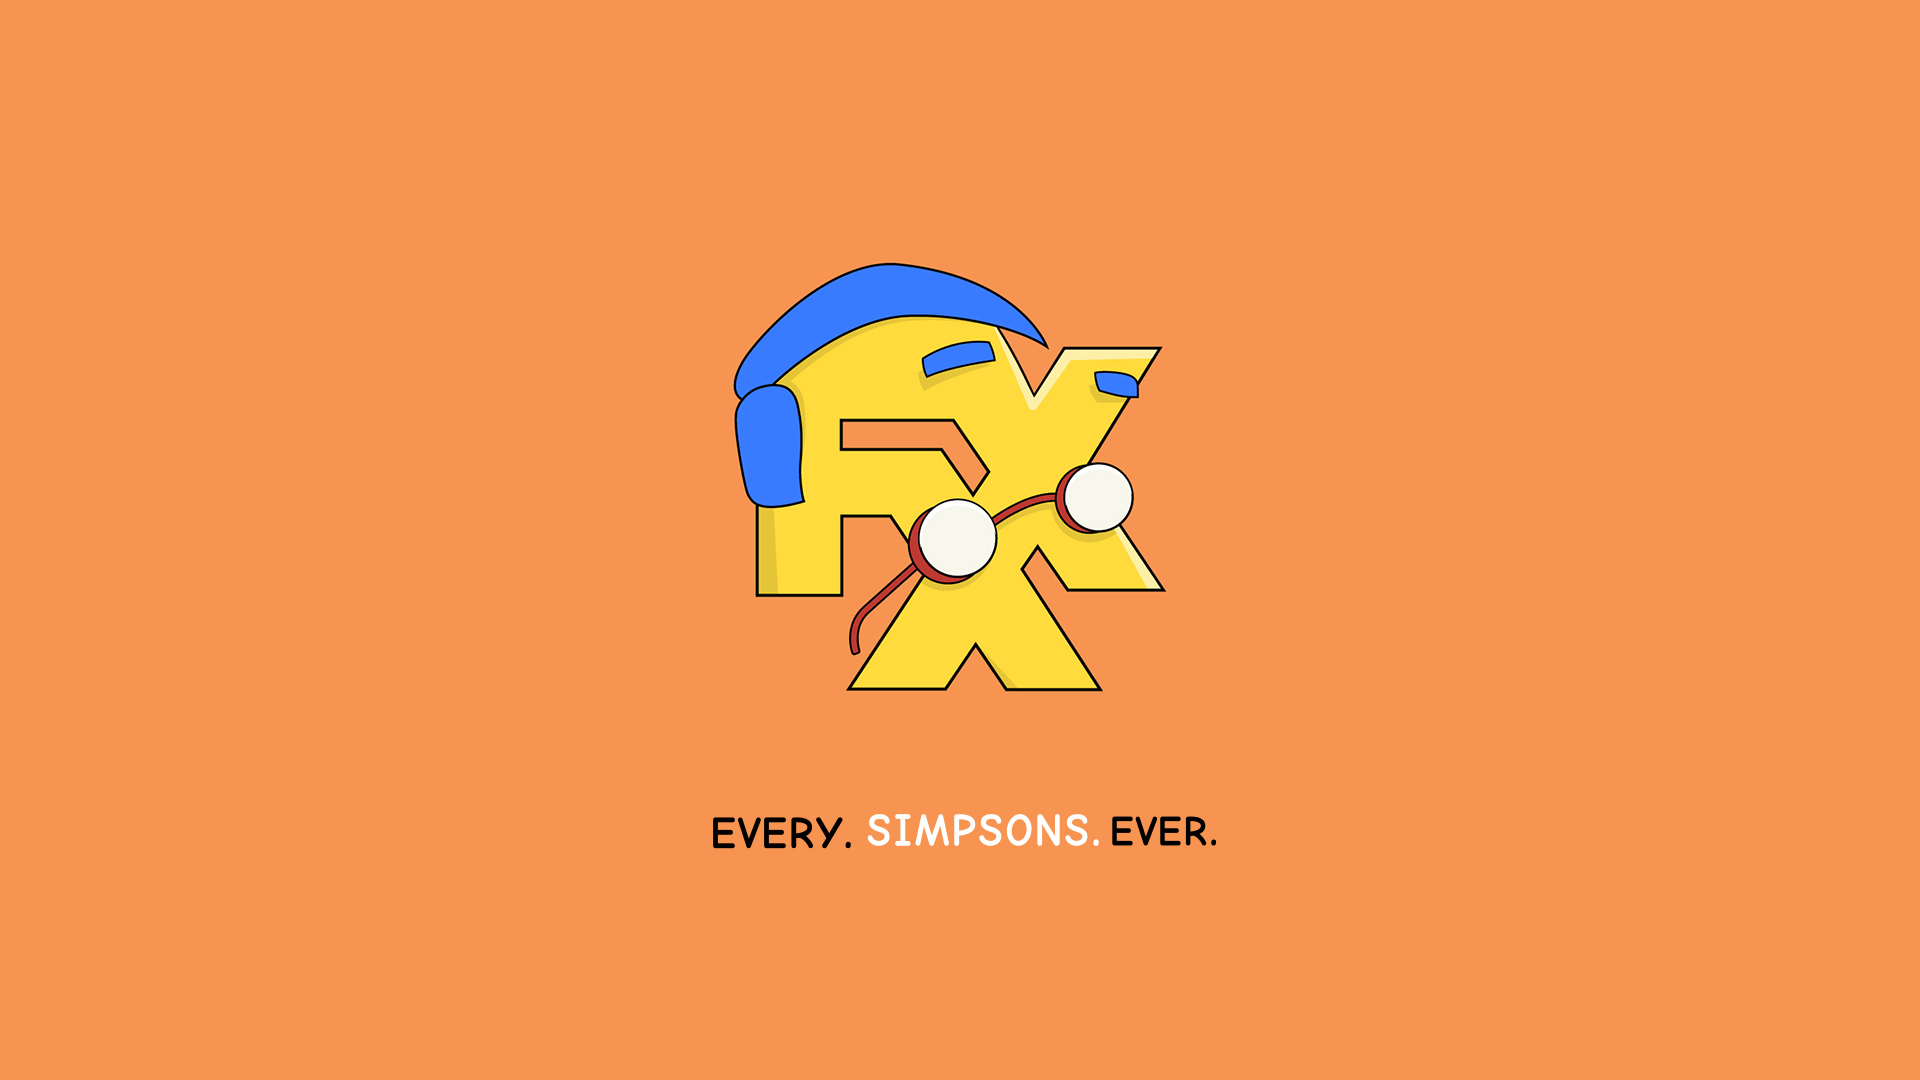 Images of Fxx Logo Simpsons - #rock-cafe